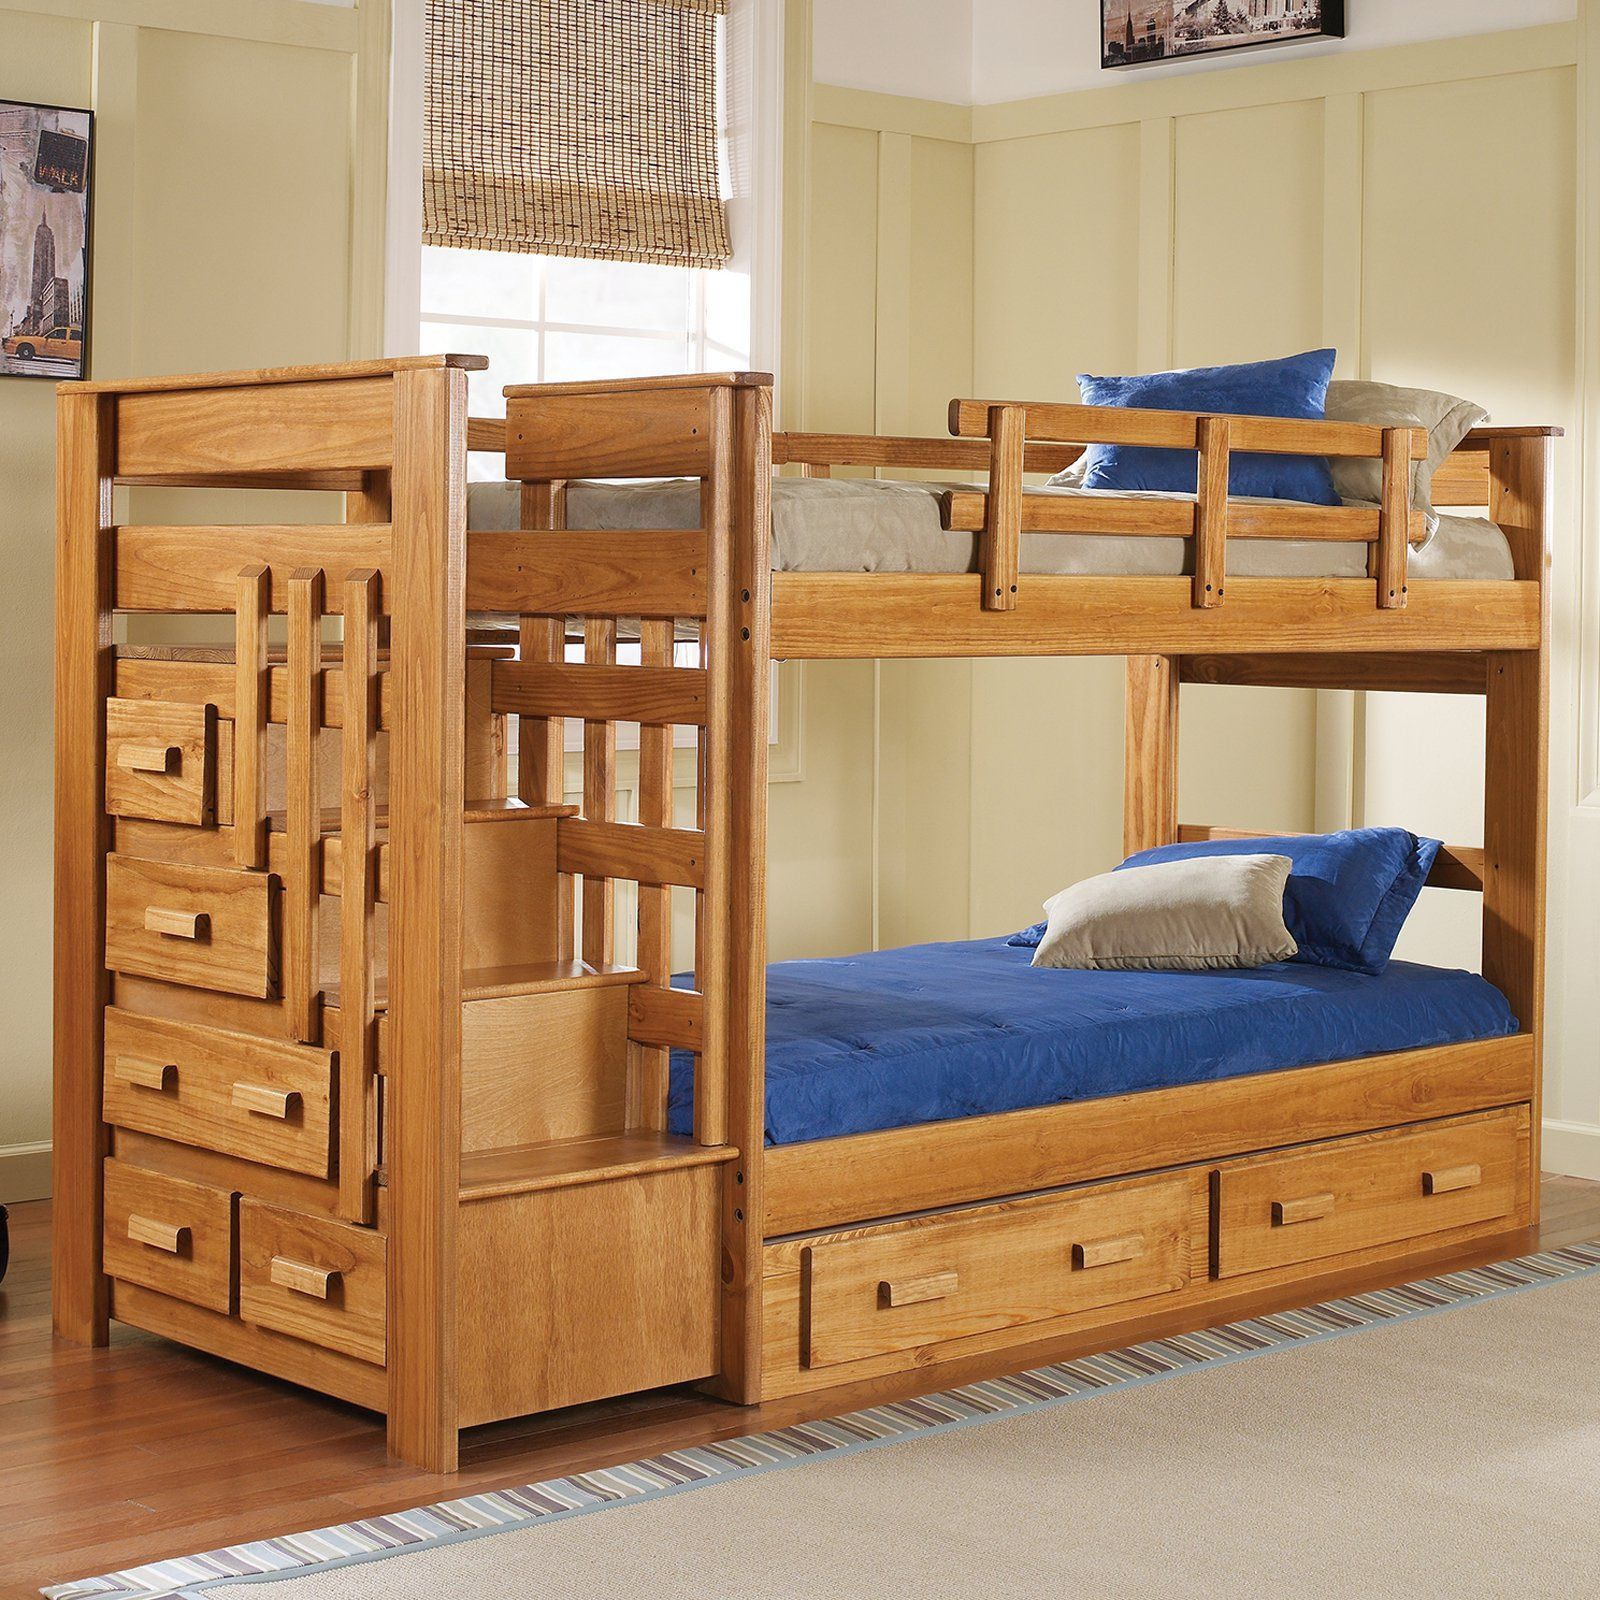 Corner twin loft bed  Pin by Liz Stoddard on Inside in   Pinterest  Bunk Bed Twins